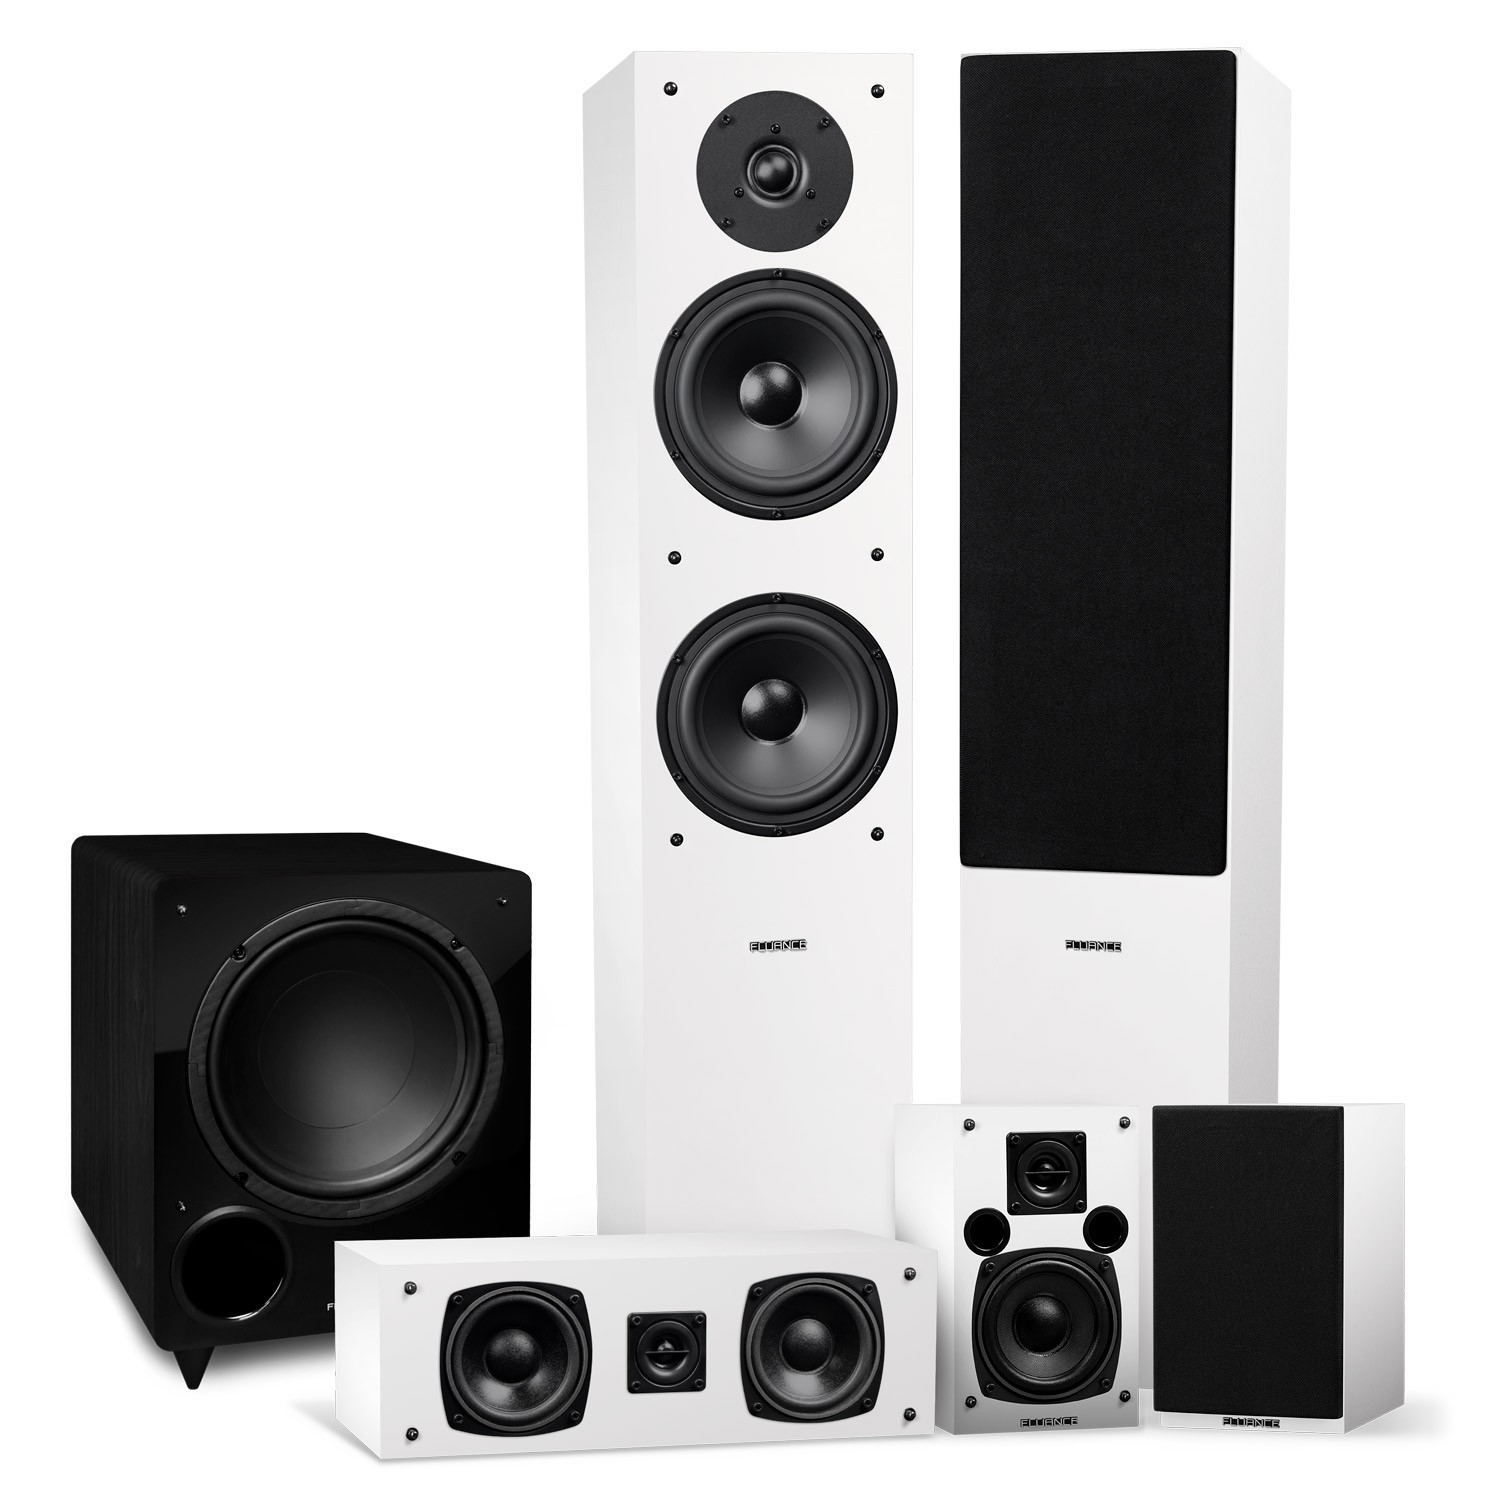 Elite Series Surround Sound Home Theater 5.1 Channel Speaker System - White - Main